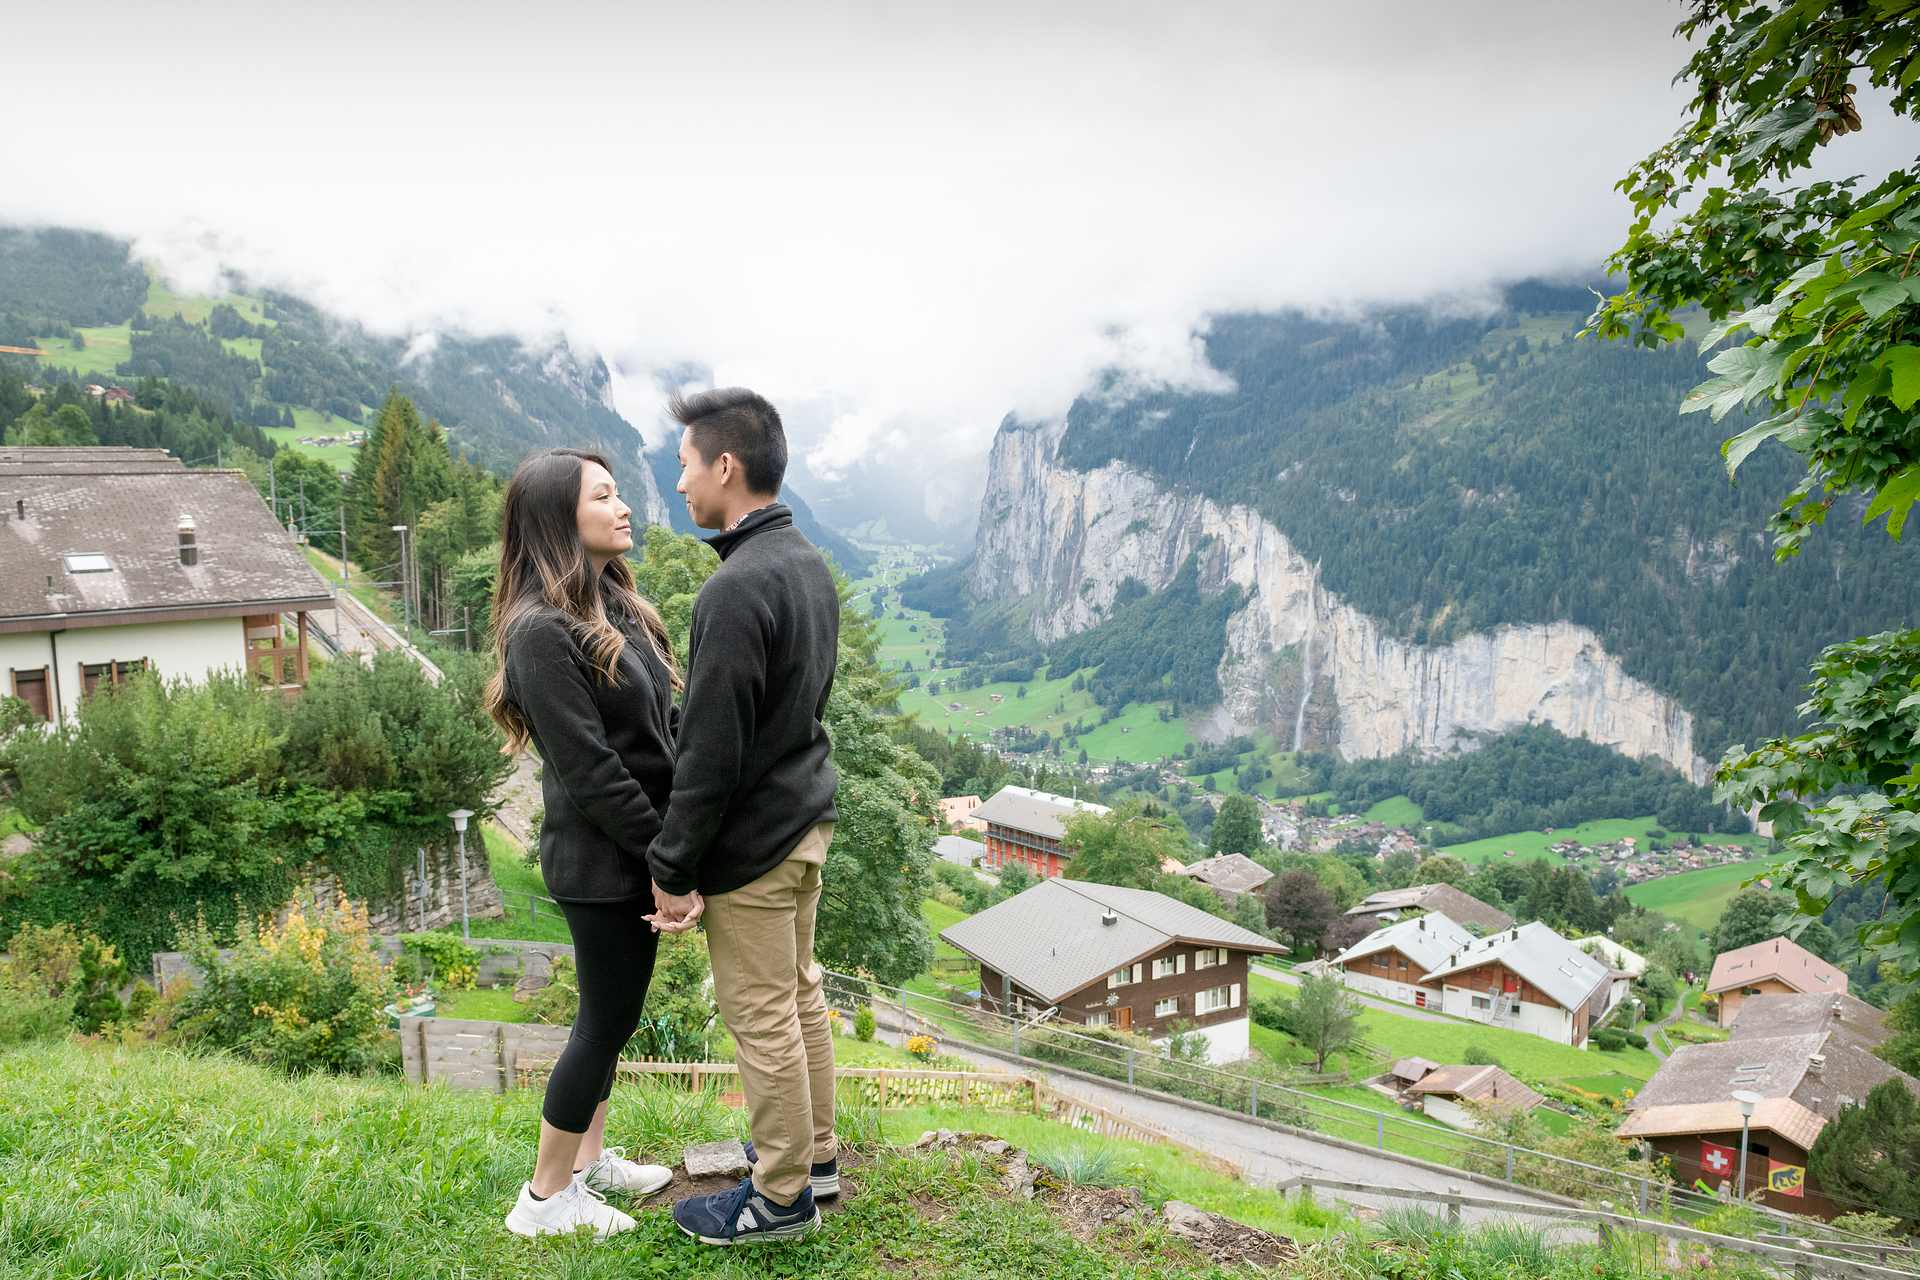 Surprise Engagement in Interlaken, Switzerland